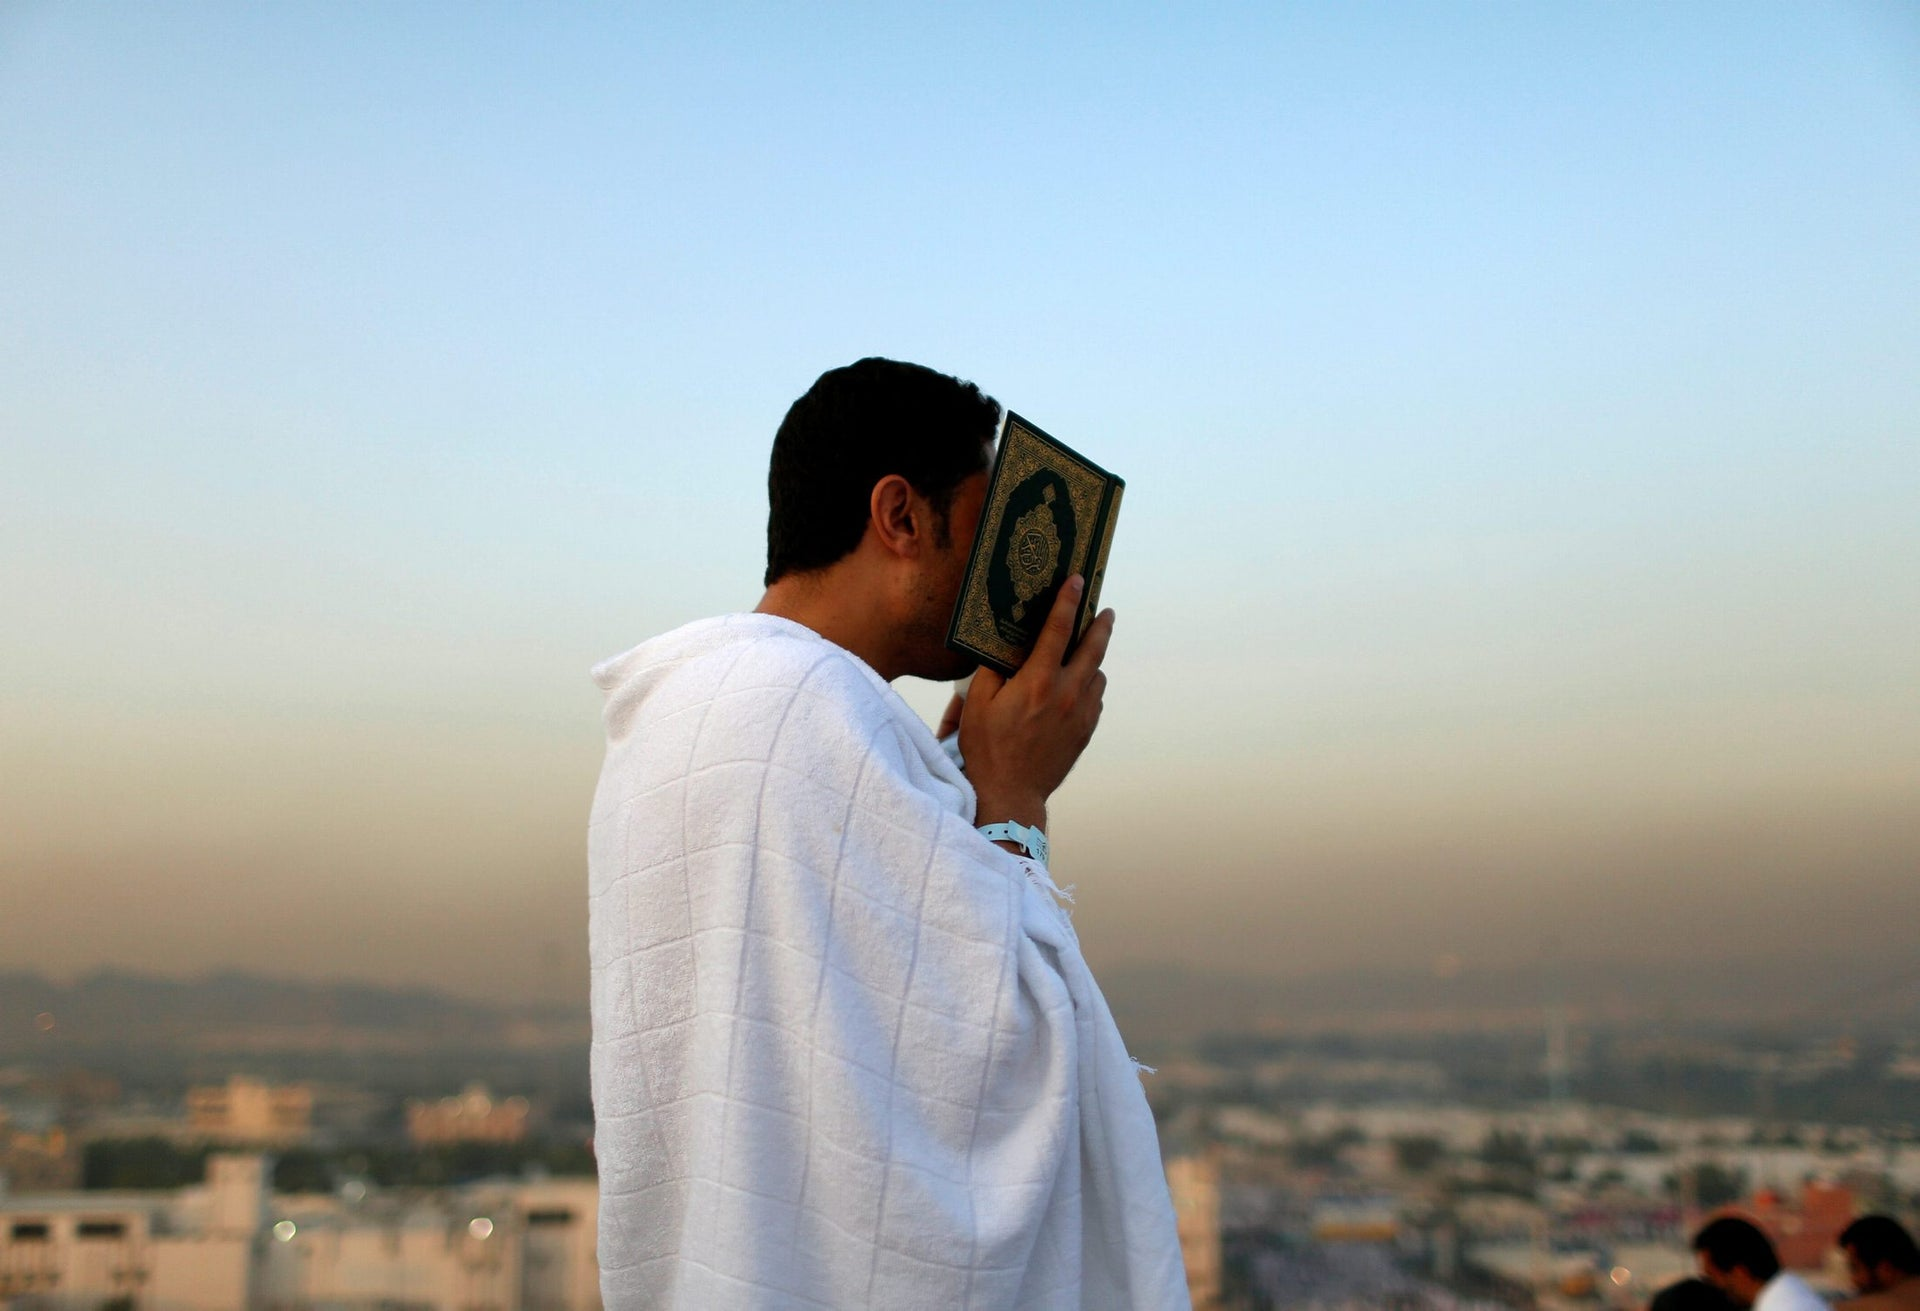 A Muslim pilgrim holds a copy of the Koran as he prays on Mount Mercy on the plains of Arafat during the annual haj pilgrimage, outside the holy city of Mecca, Saudi Arabia September 11, 2016.